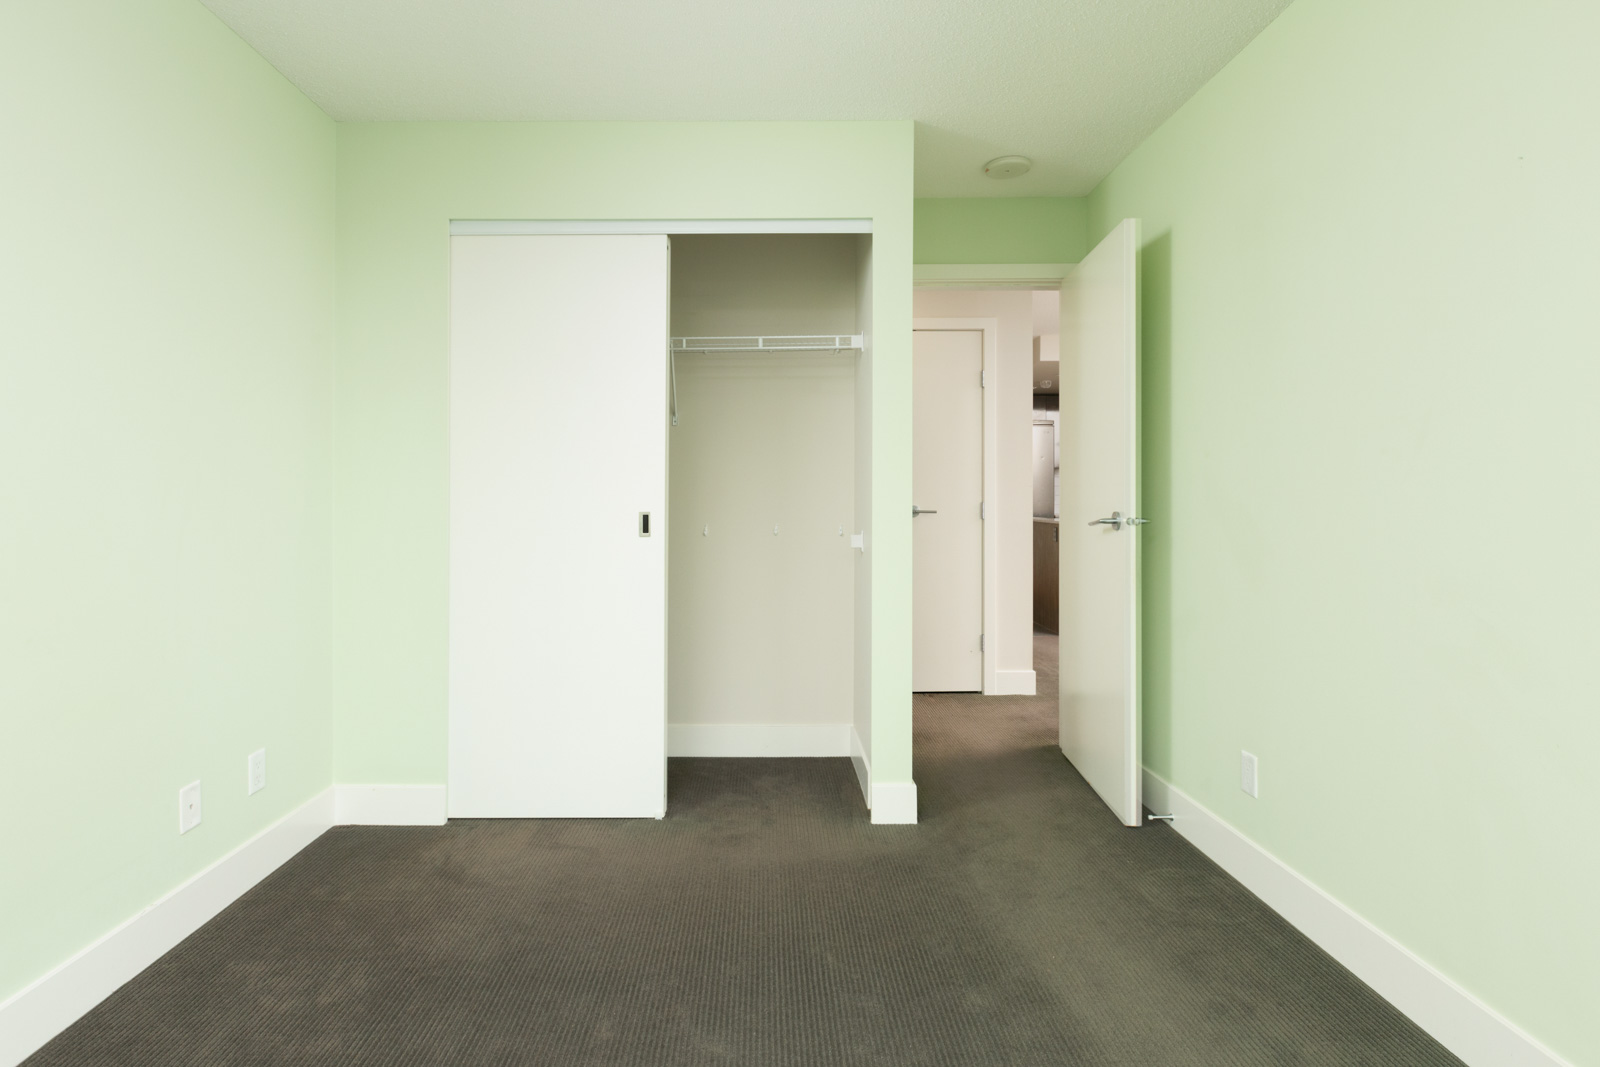 condo bedroom with hardwood floors and closet on left and open door on the right